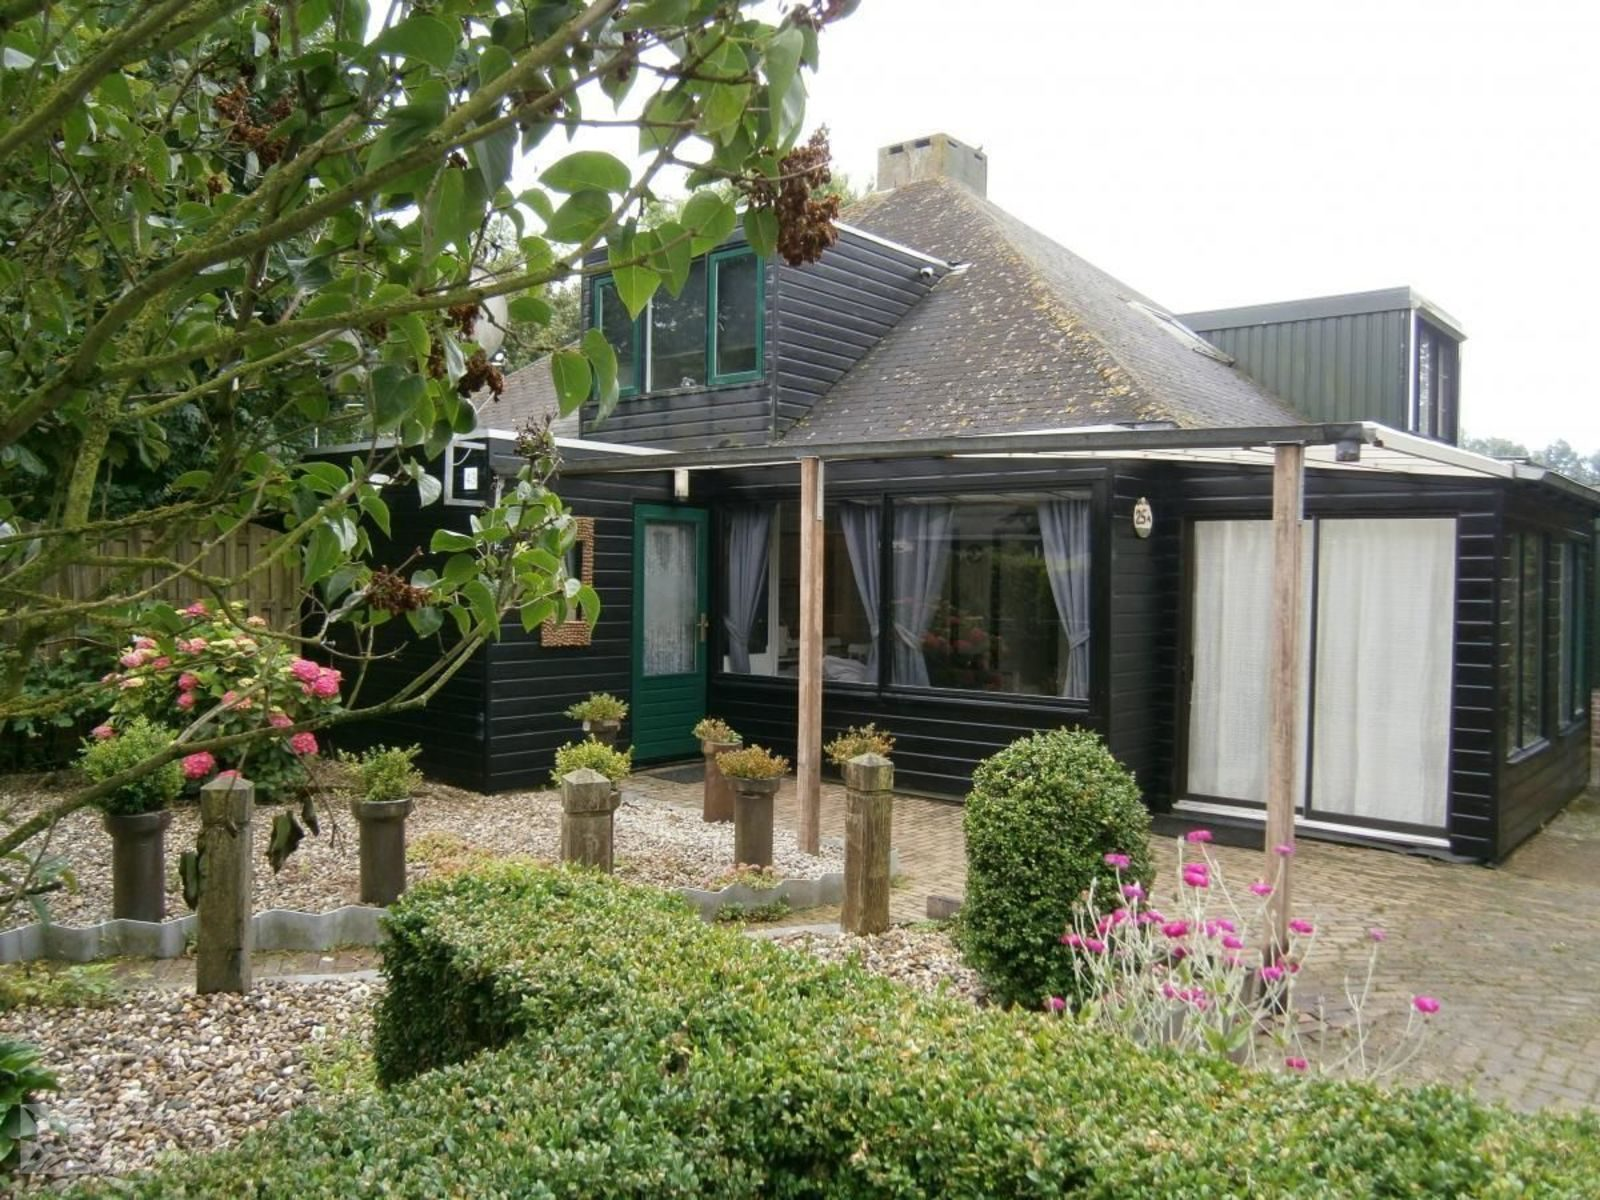 Accommodations at Oud Kempen